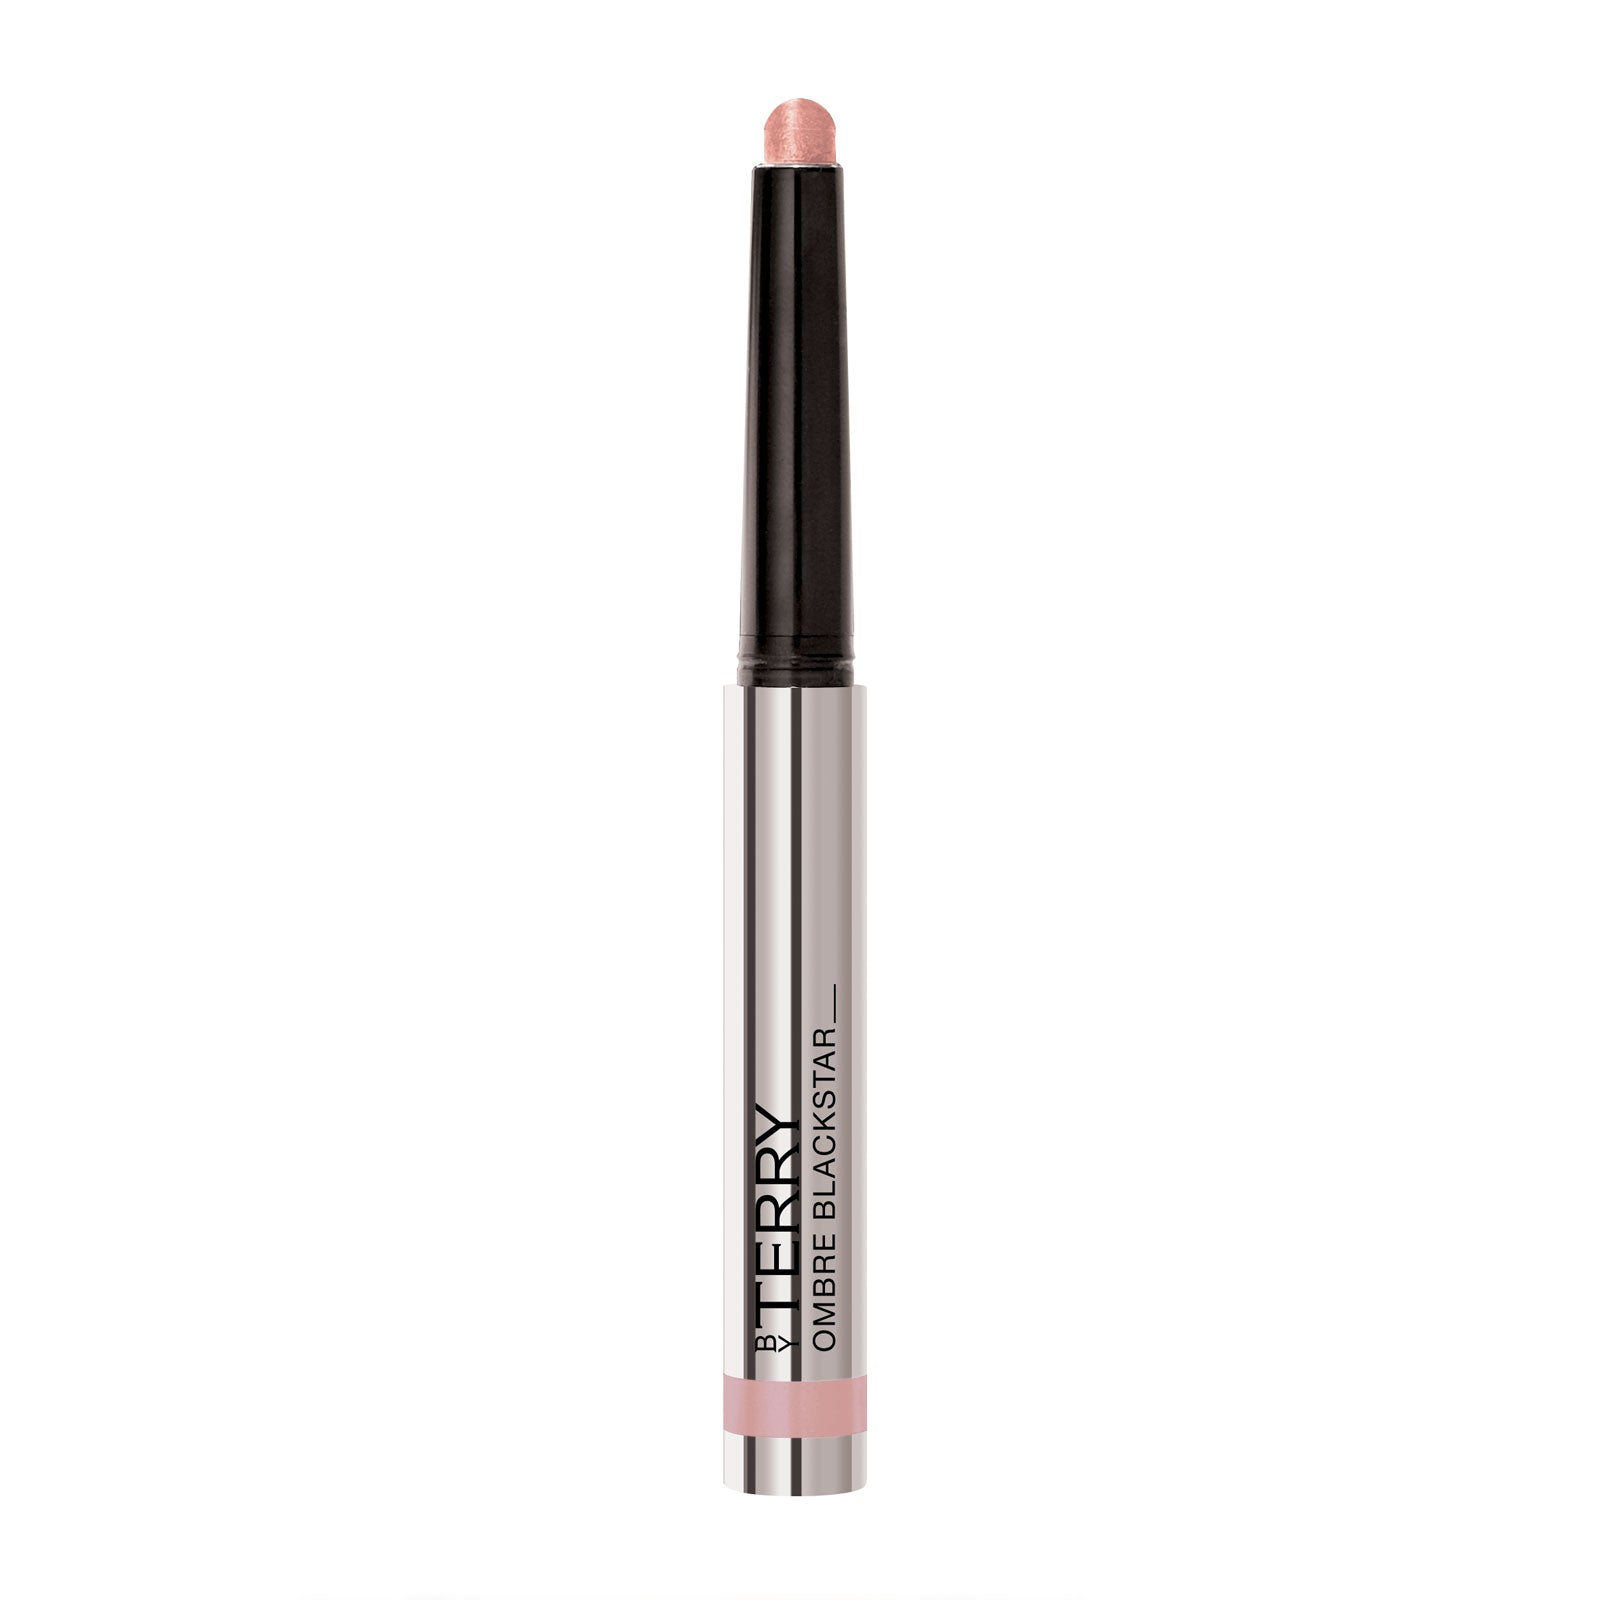 BY TERRY Ombre Blackstar Melting Eyeshadow 1.64g